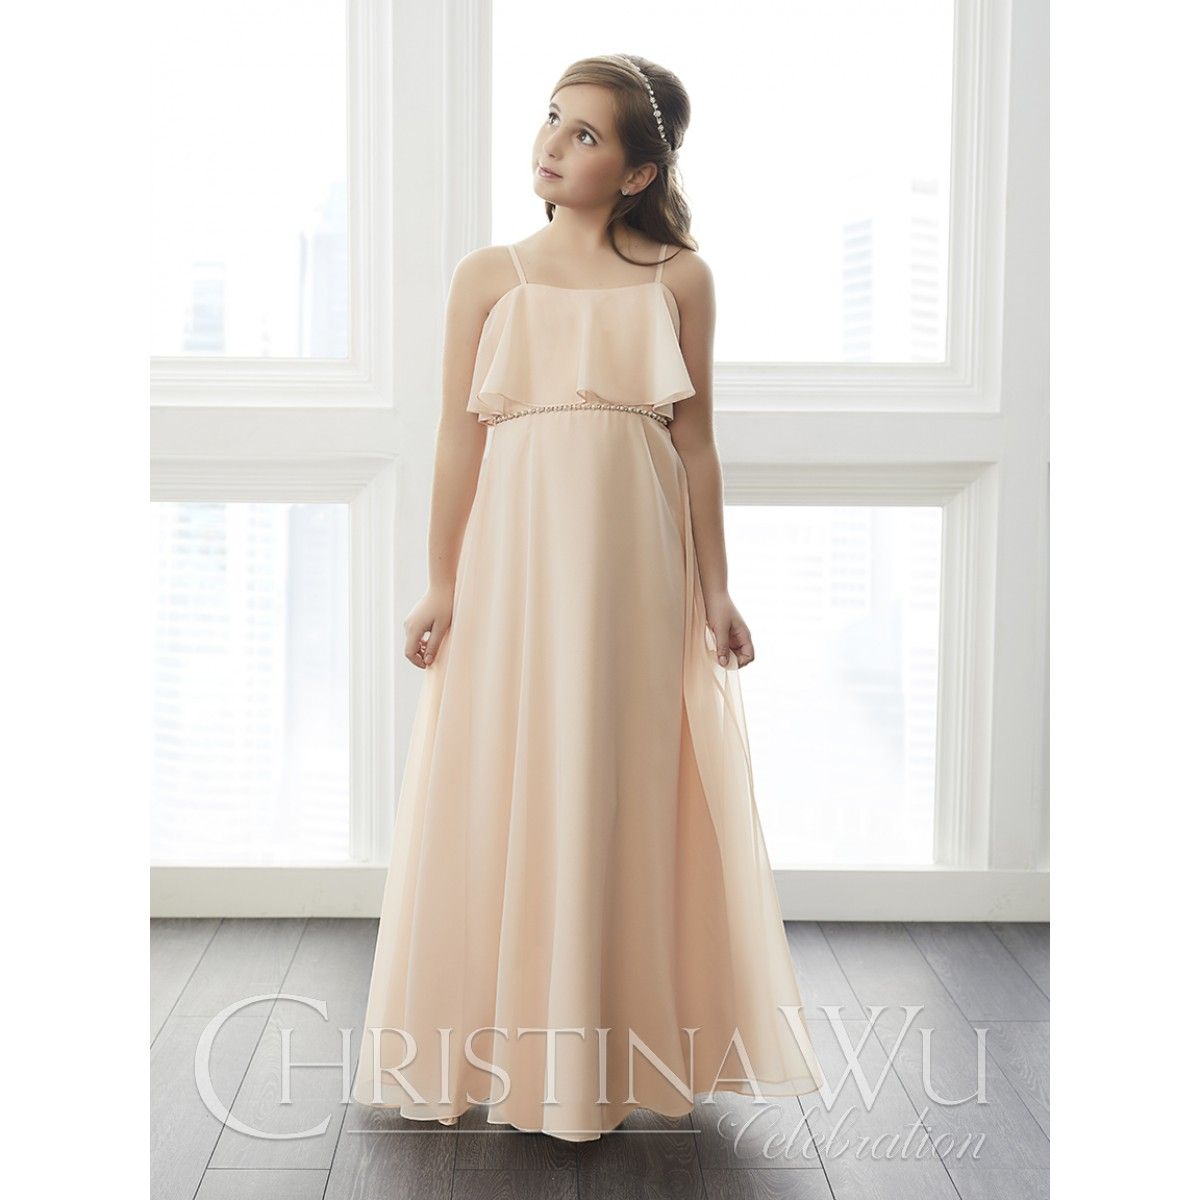 Junior bridesmaid available at ella park bridal newburgh in christina wu celebrations 32753 christina wu celebrations 2017 prom dresses bridal gowns plus size dresses for sale in fall river ma ombrellifo Image collections